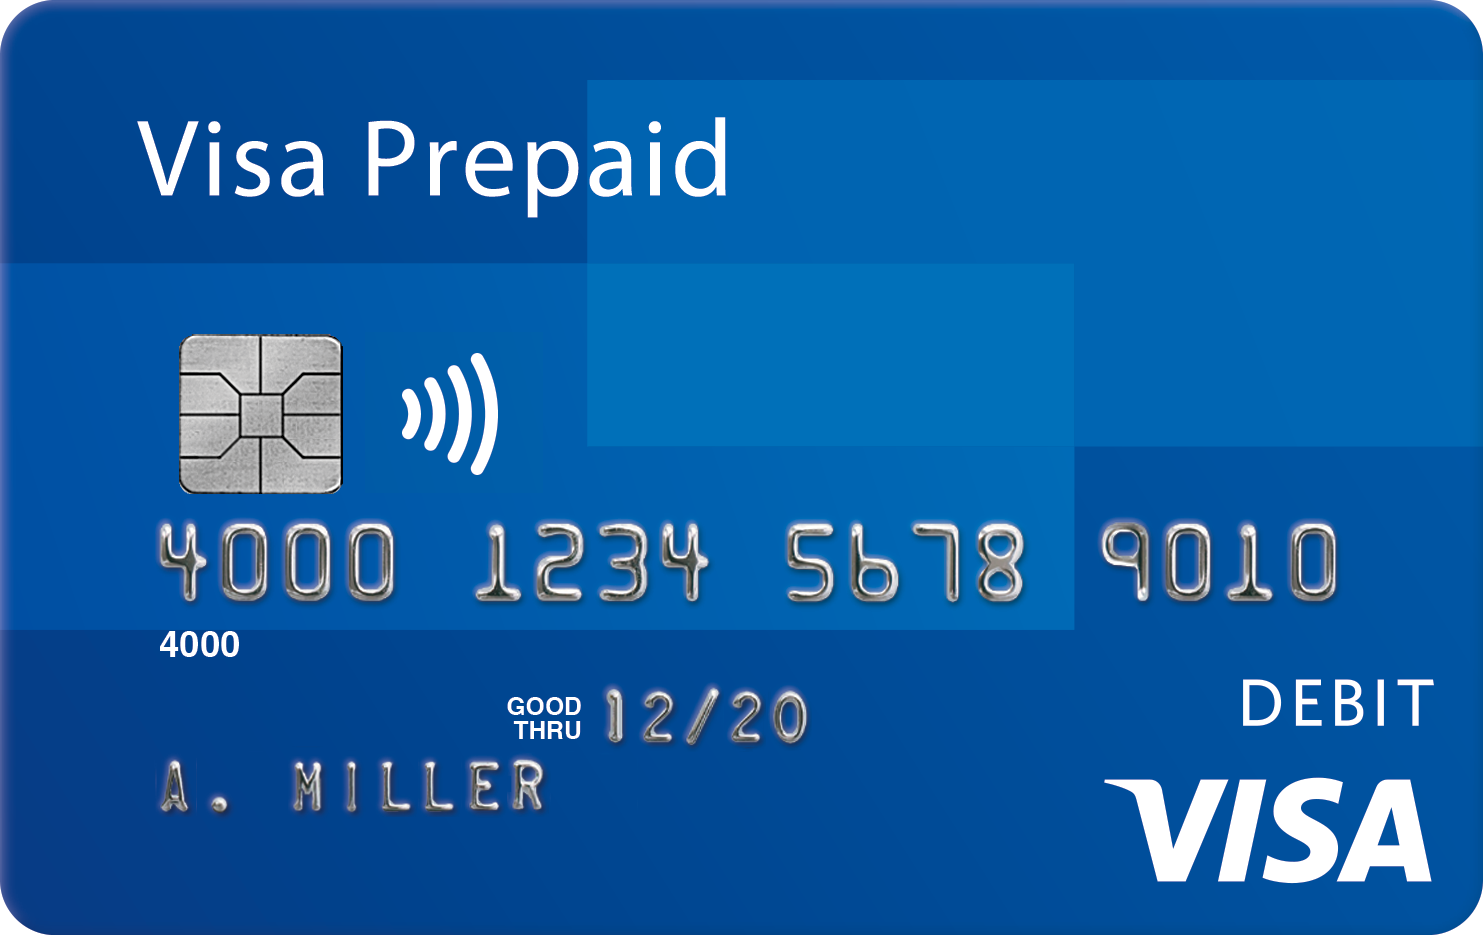 an image of visa business prepaid card - Business Prepaid Cards